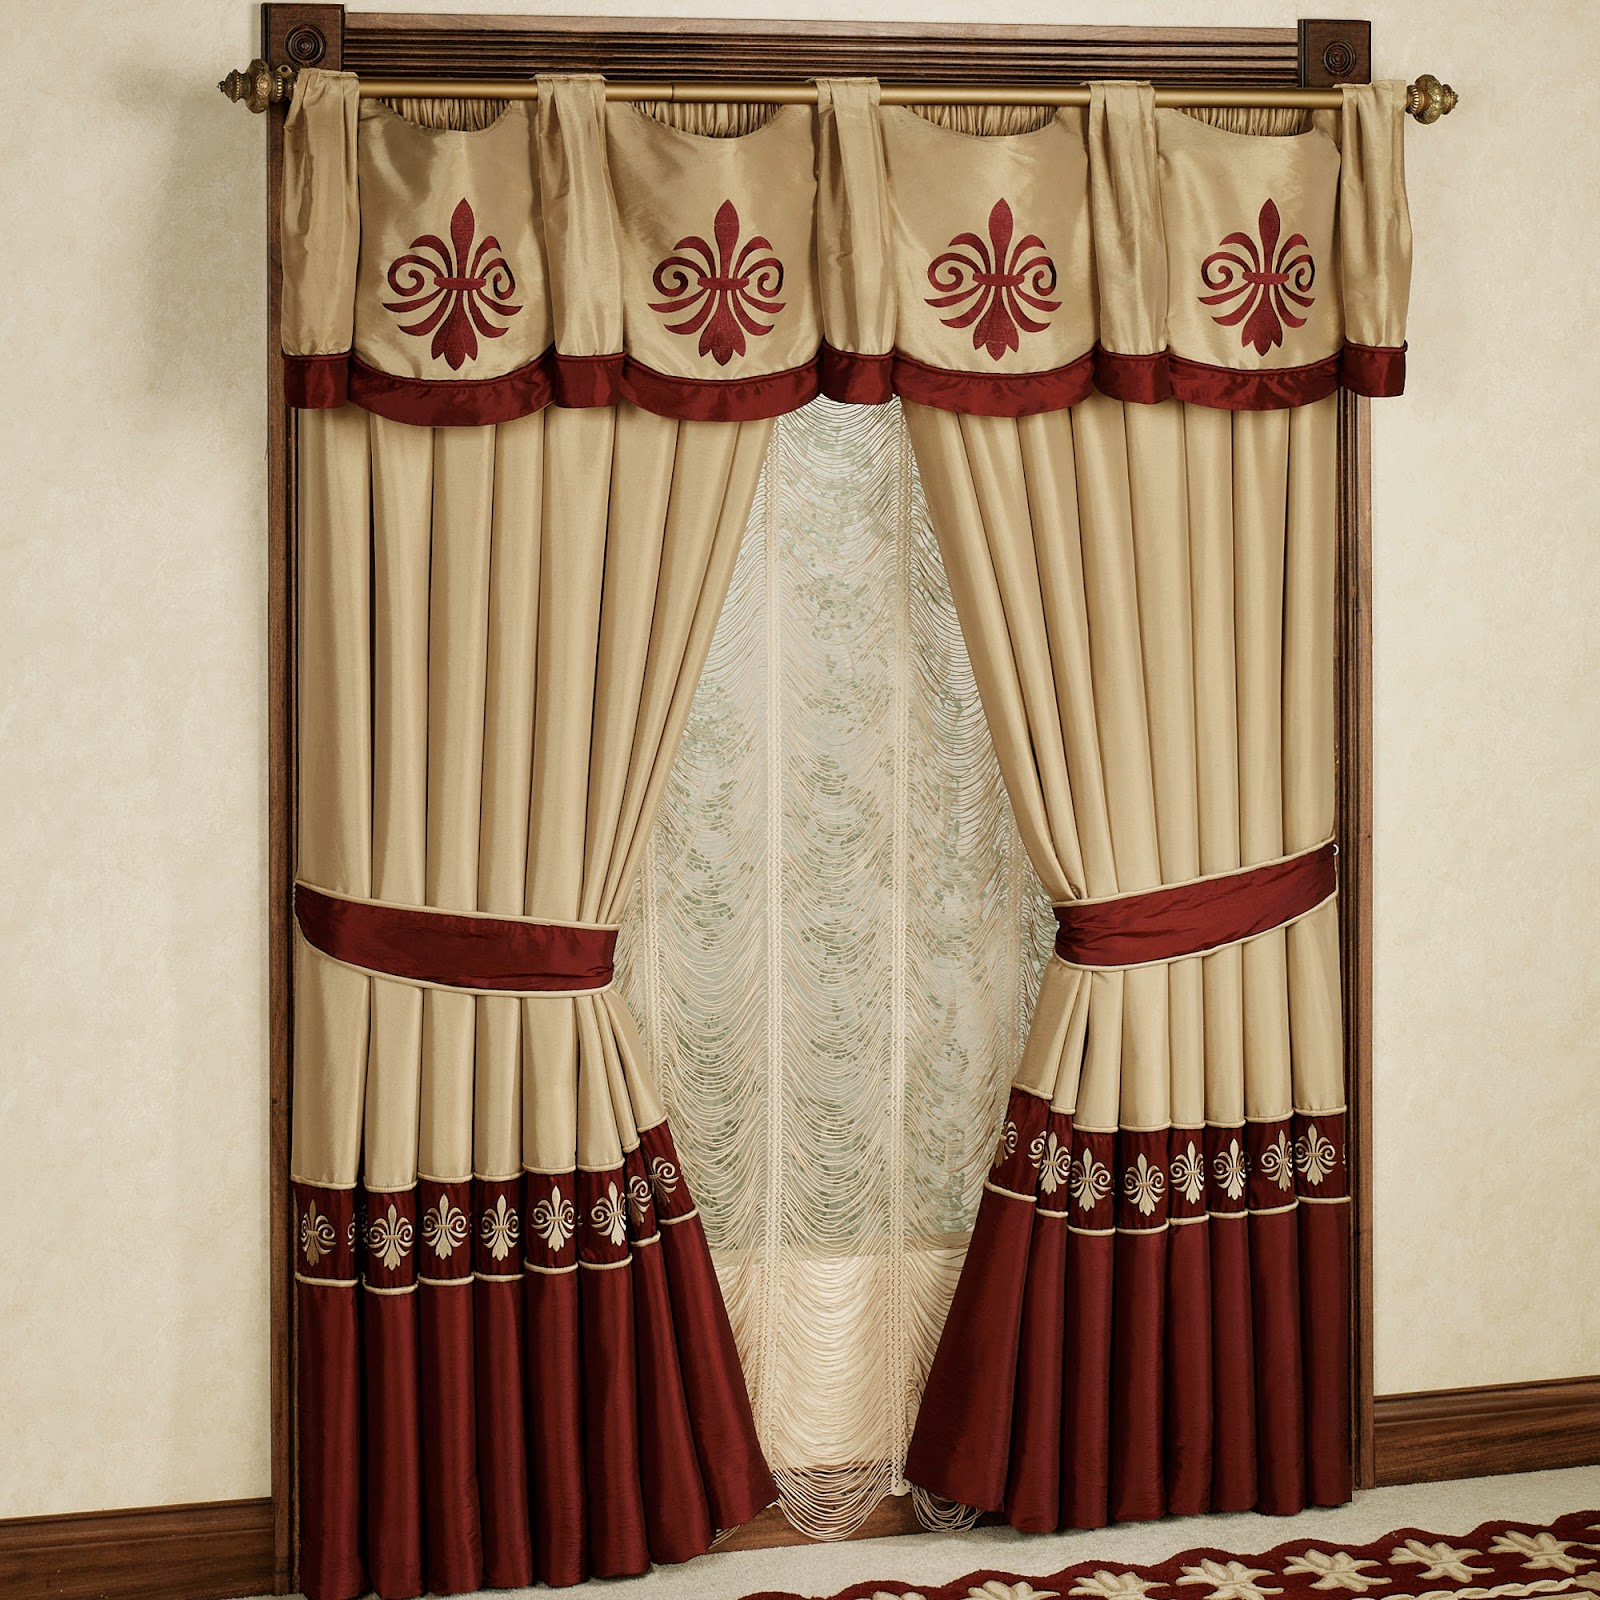 How To Dye Drop Cloth Curtains Fit Window Fix Curtain Blinds Rod